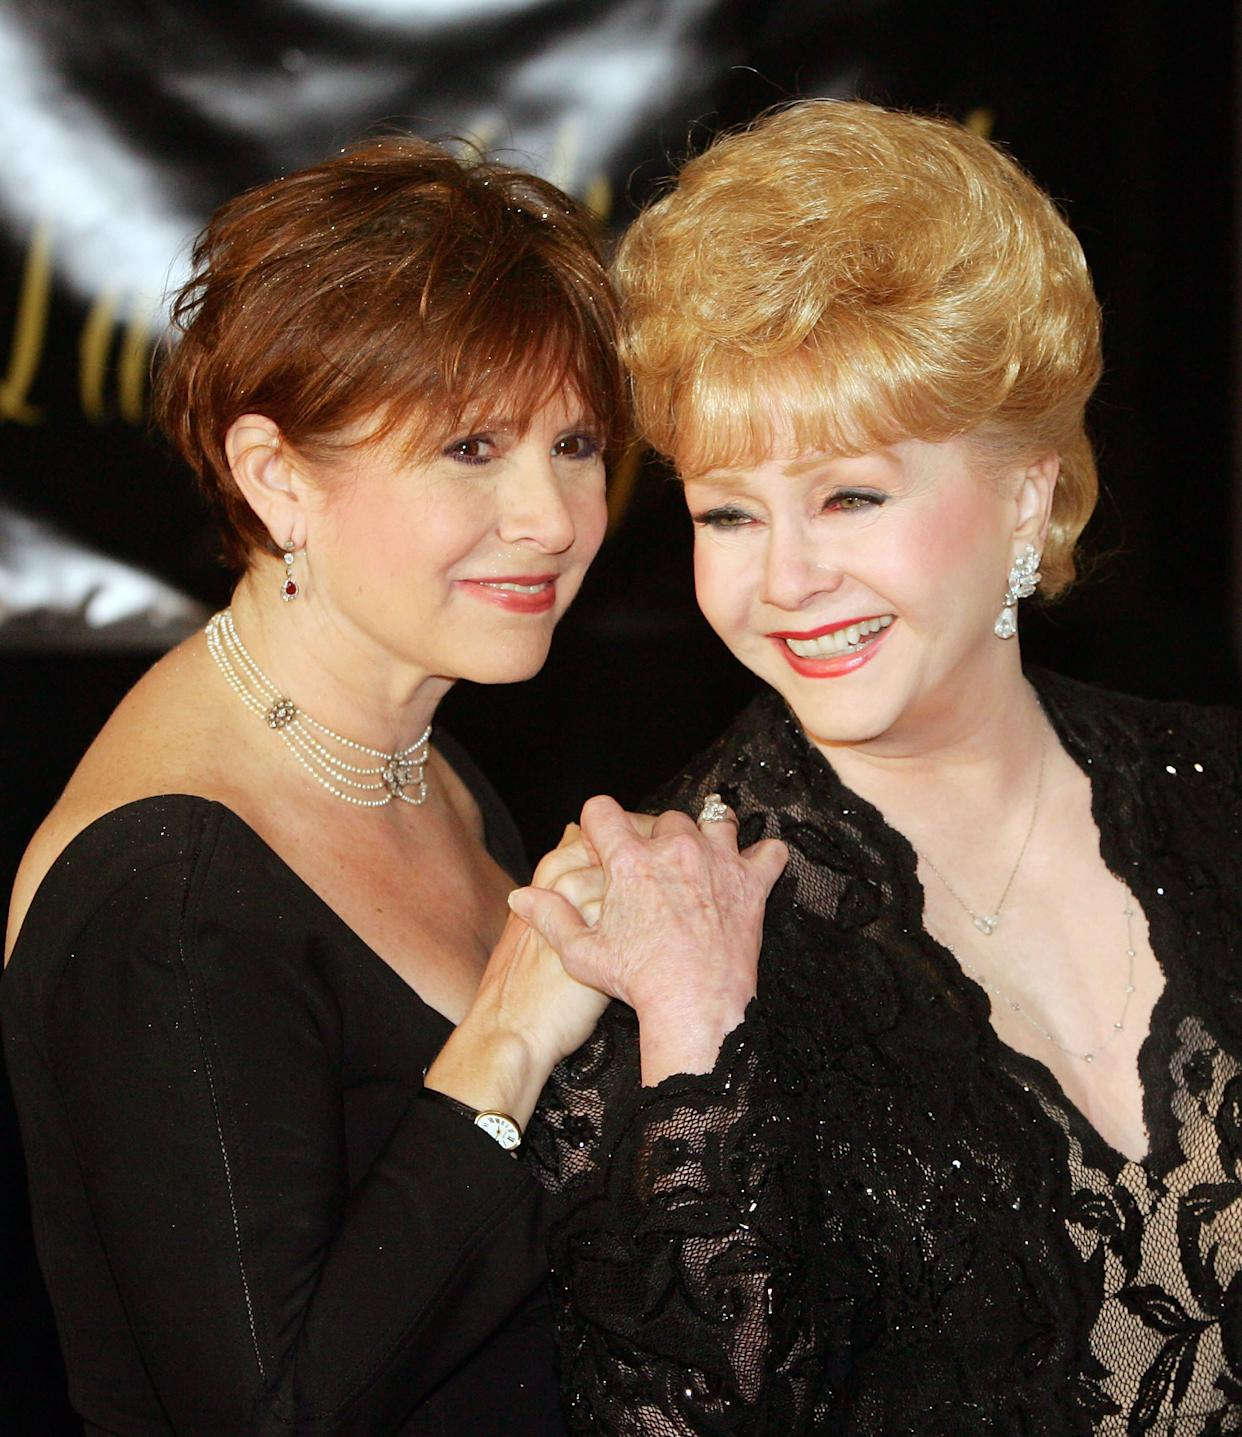 Carrie Fisher andDebbie Reynolds arrive for Elizabeth Taylor's 75th birthday at the Ritz-Carlton, Lake Las Vegas on Feb. 27, 2007.